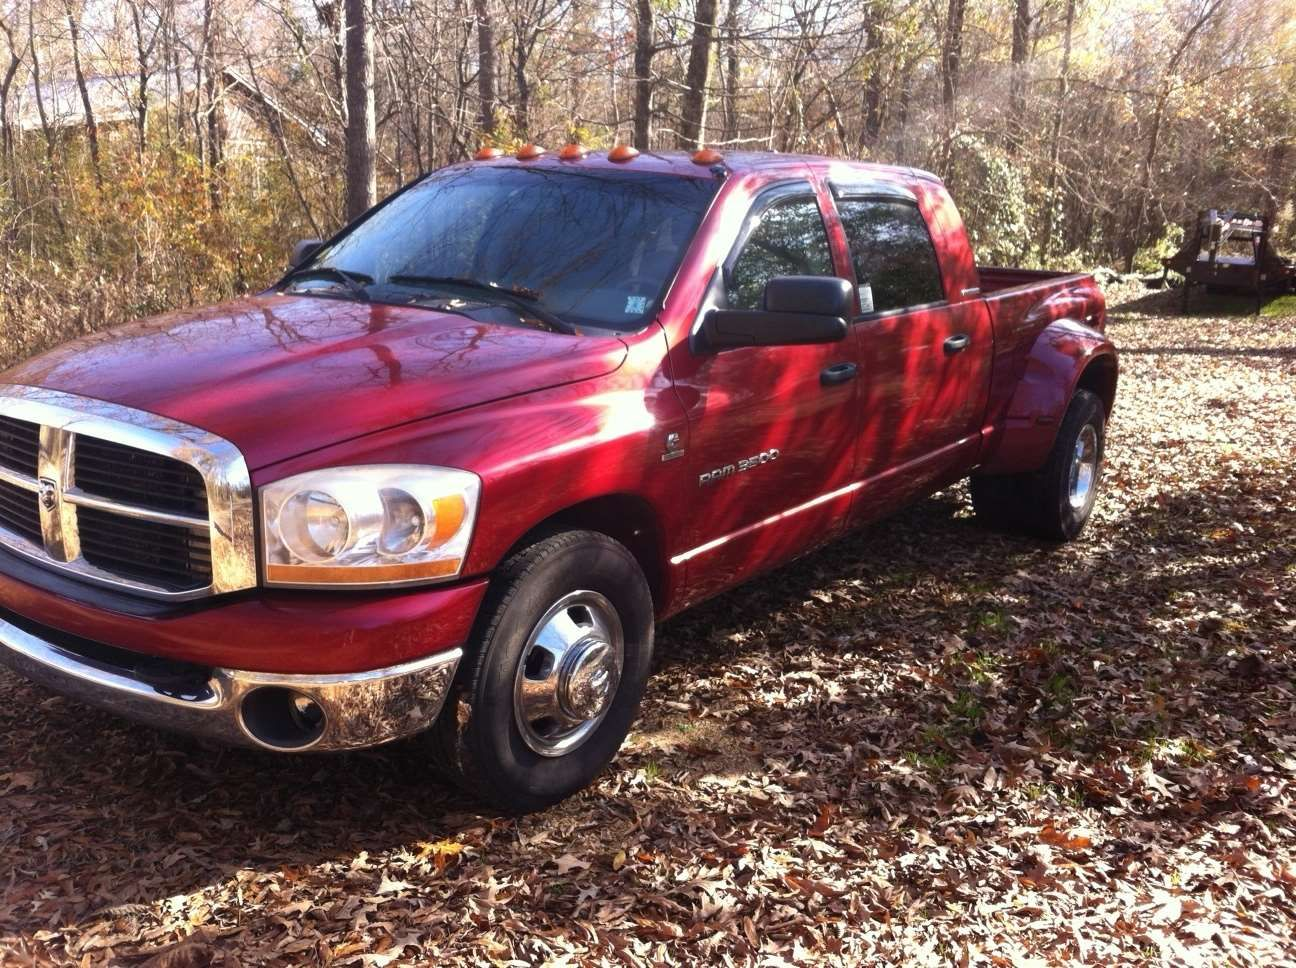 Make Dodge Model Ram 3500 Truck Year 2006 Body Style Truck Exterior Color Burgundy Interior Color Gray Doors Dodge Models Dodge Ram Exterior Colors